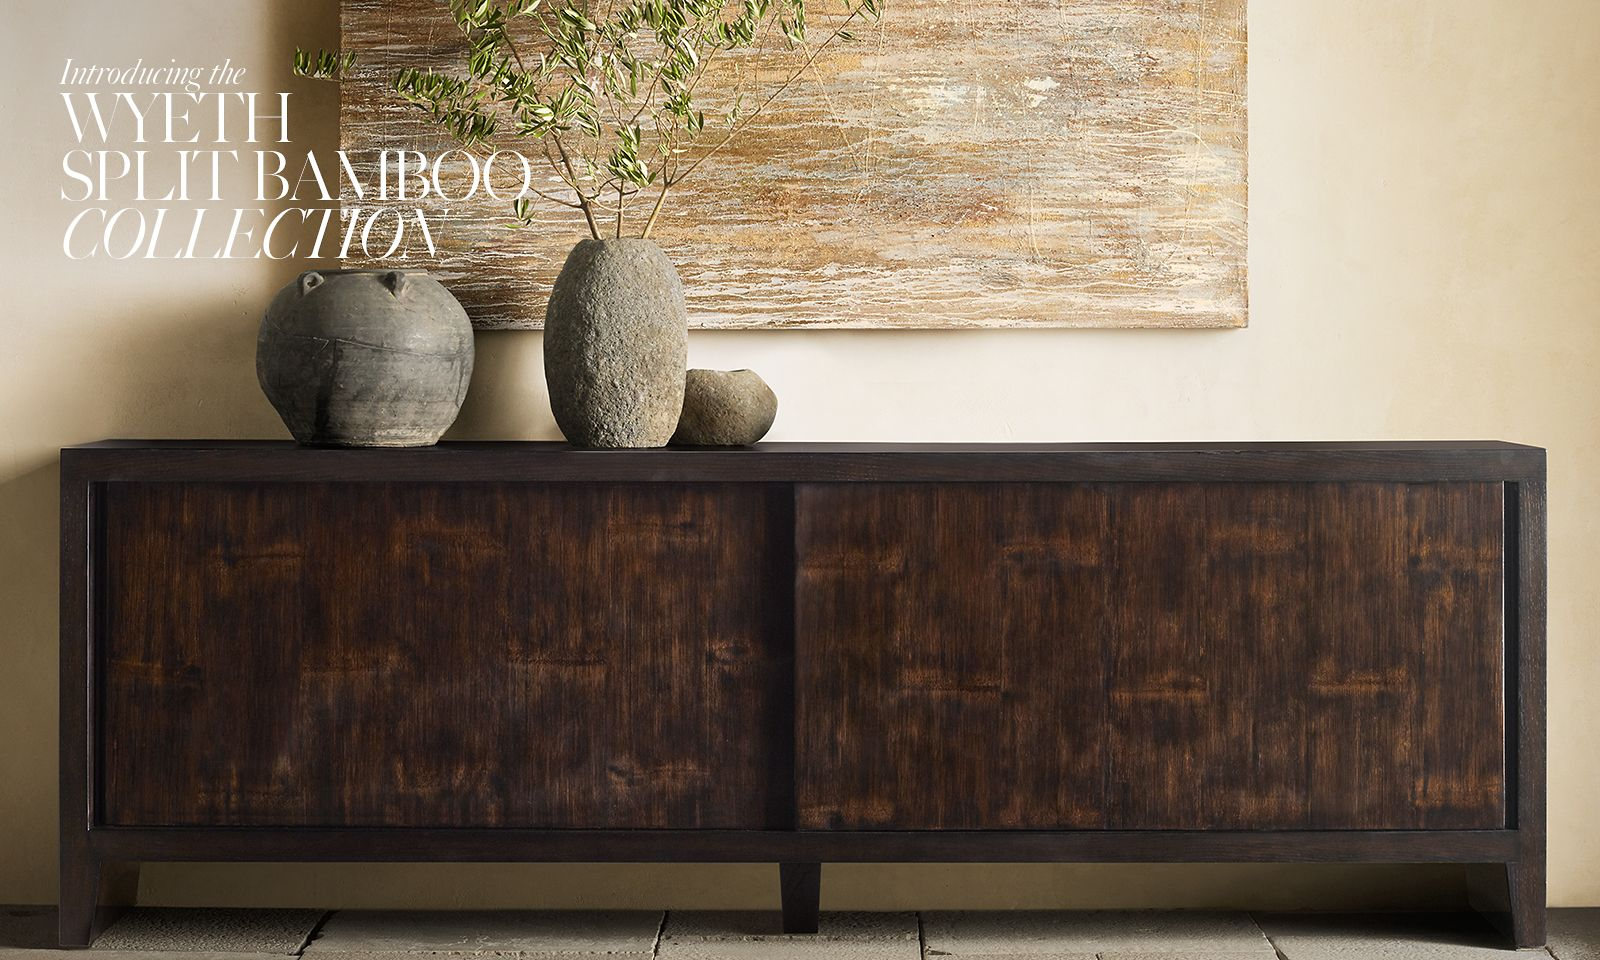 Introducing the Wyeth Split Bamboo Collection.